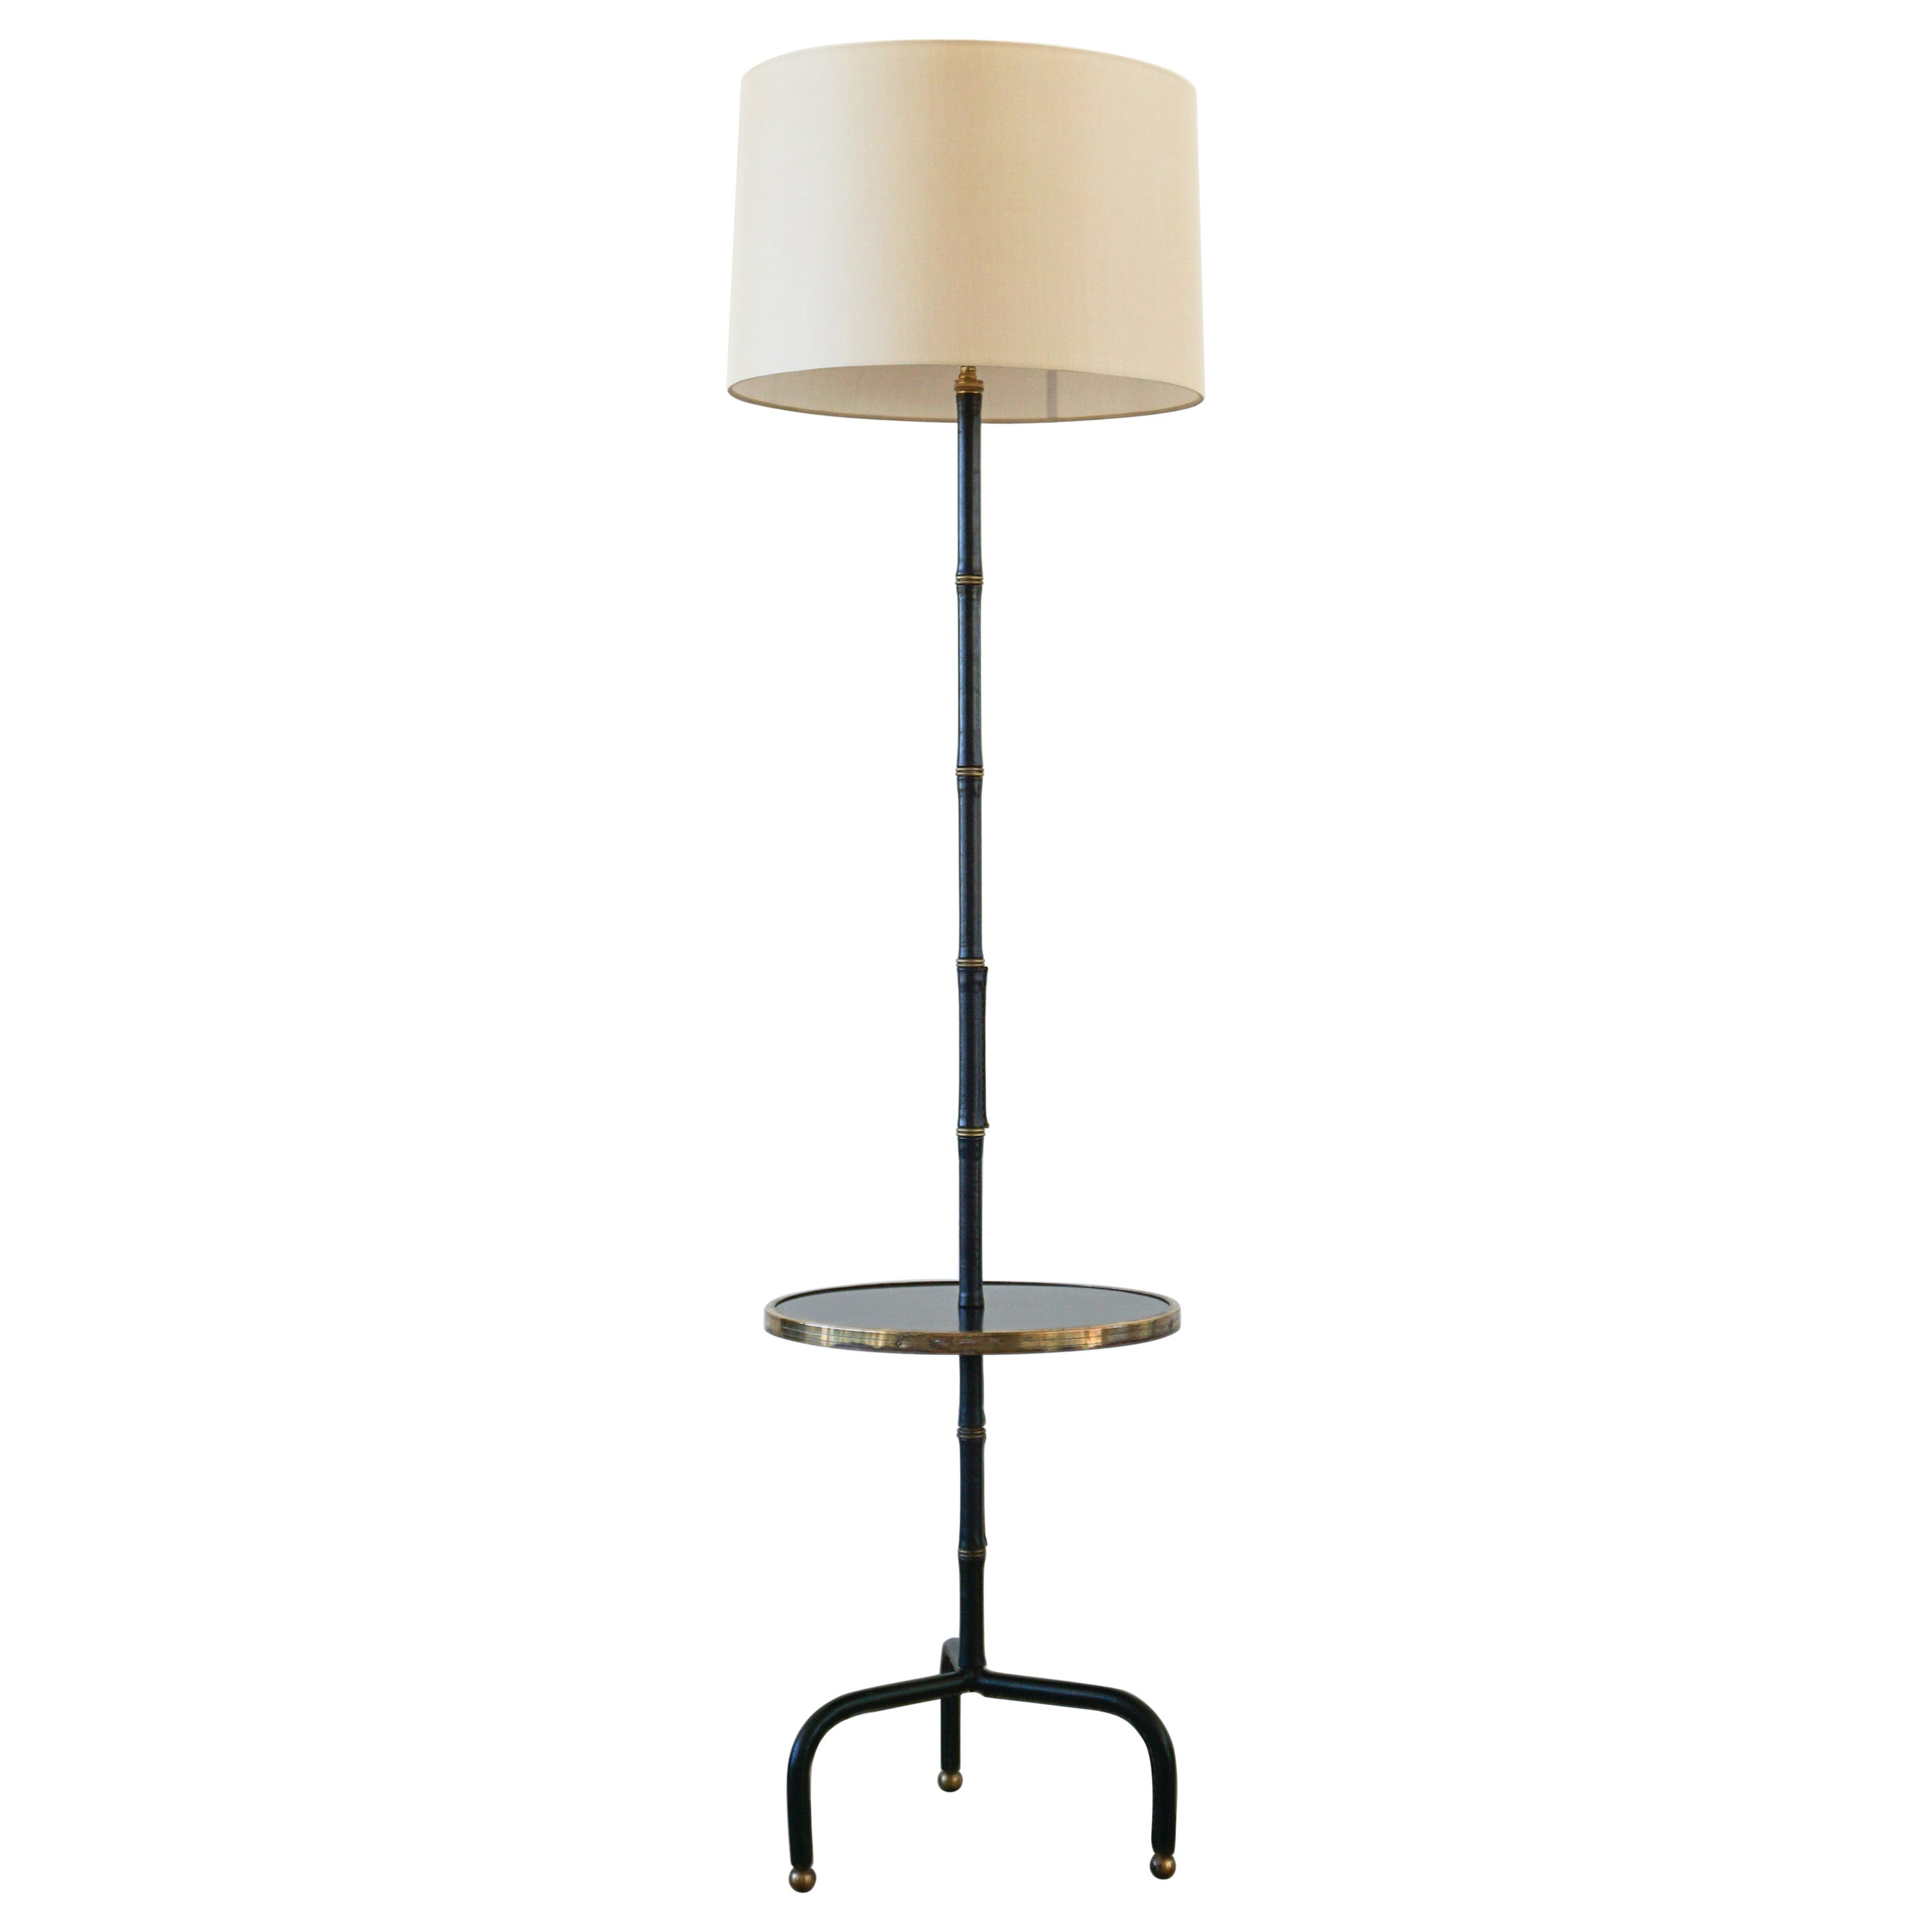 Jacques Adnet Table Floor Lamp